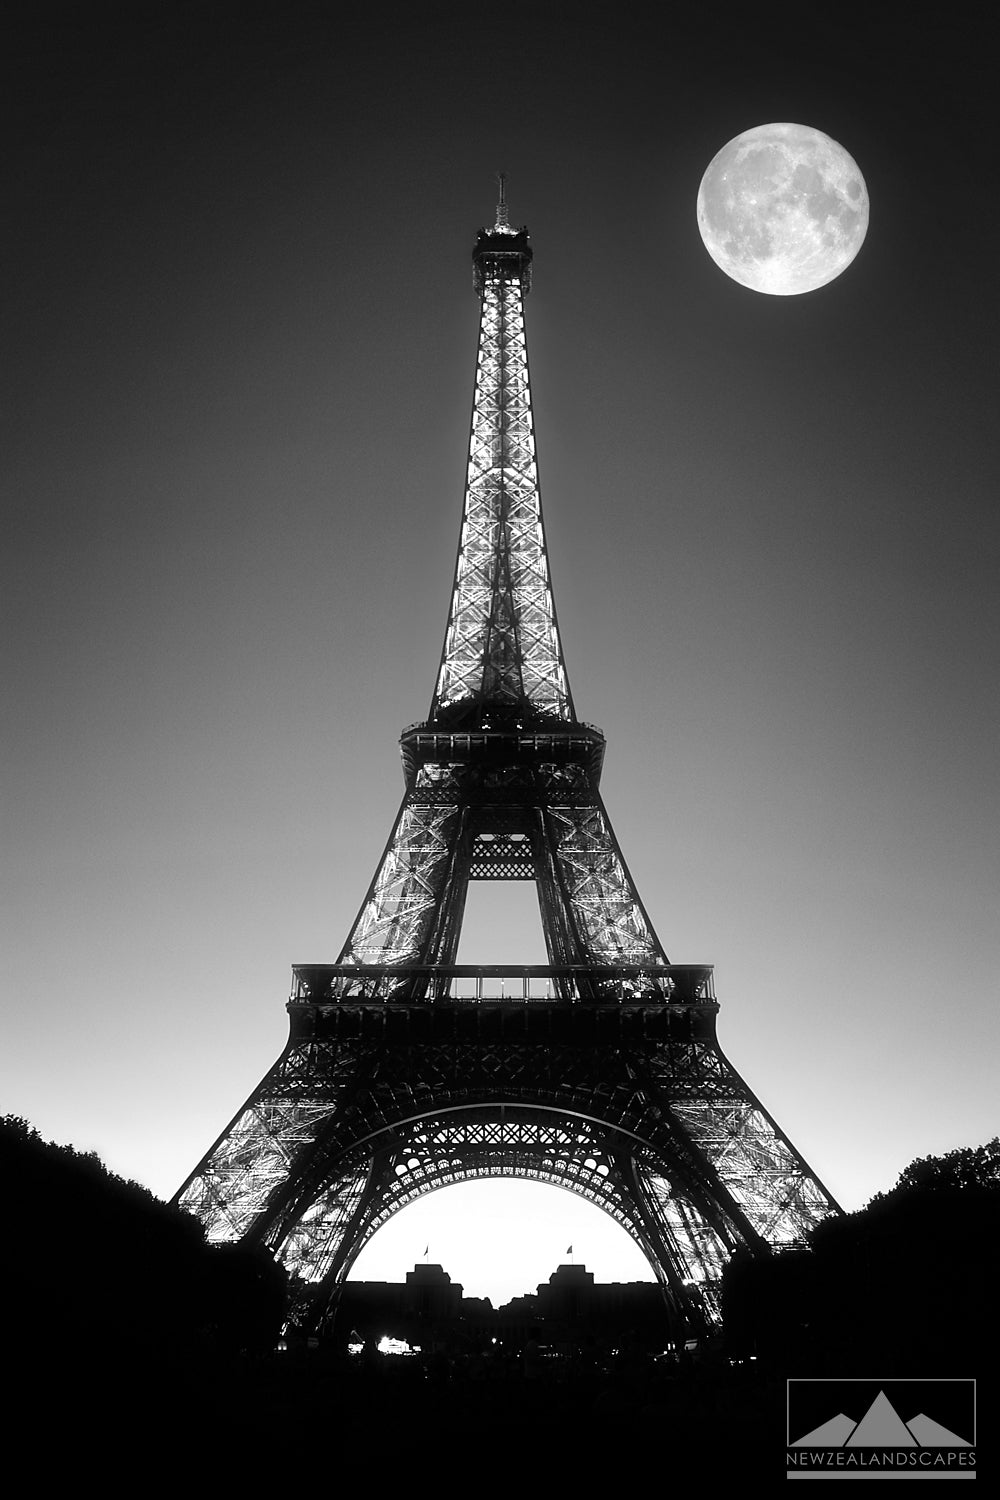 Black and white photo of the Eiffel Tower, Paris at night with full moon in the sky.